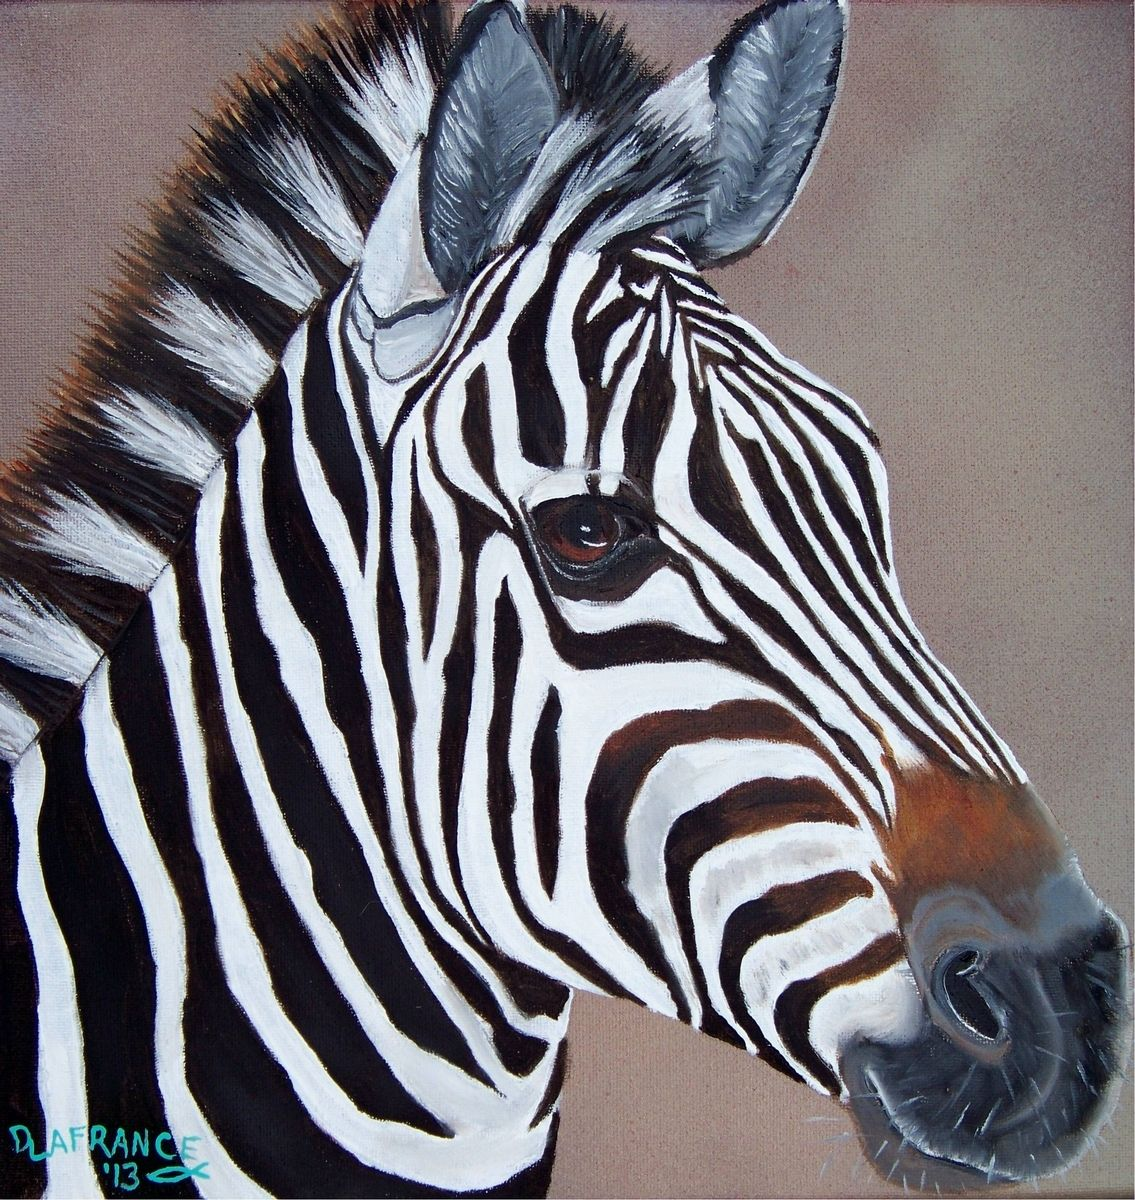 Hand Made Colorful Zebra Oil Painting By Lafrance Art